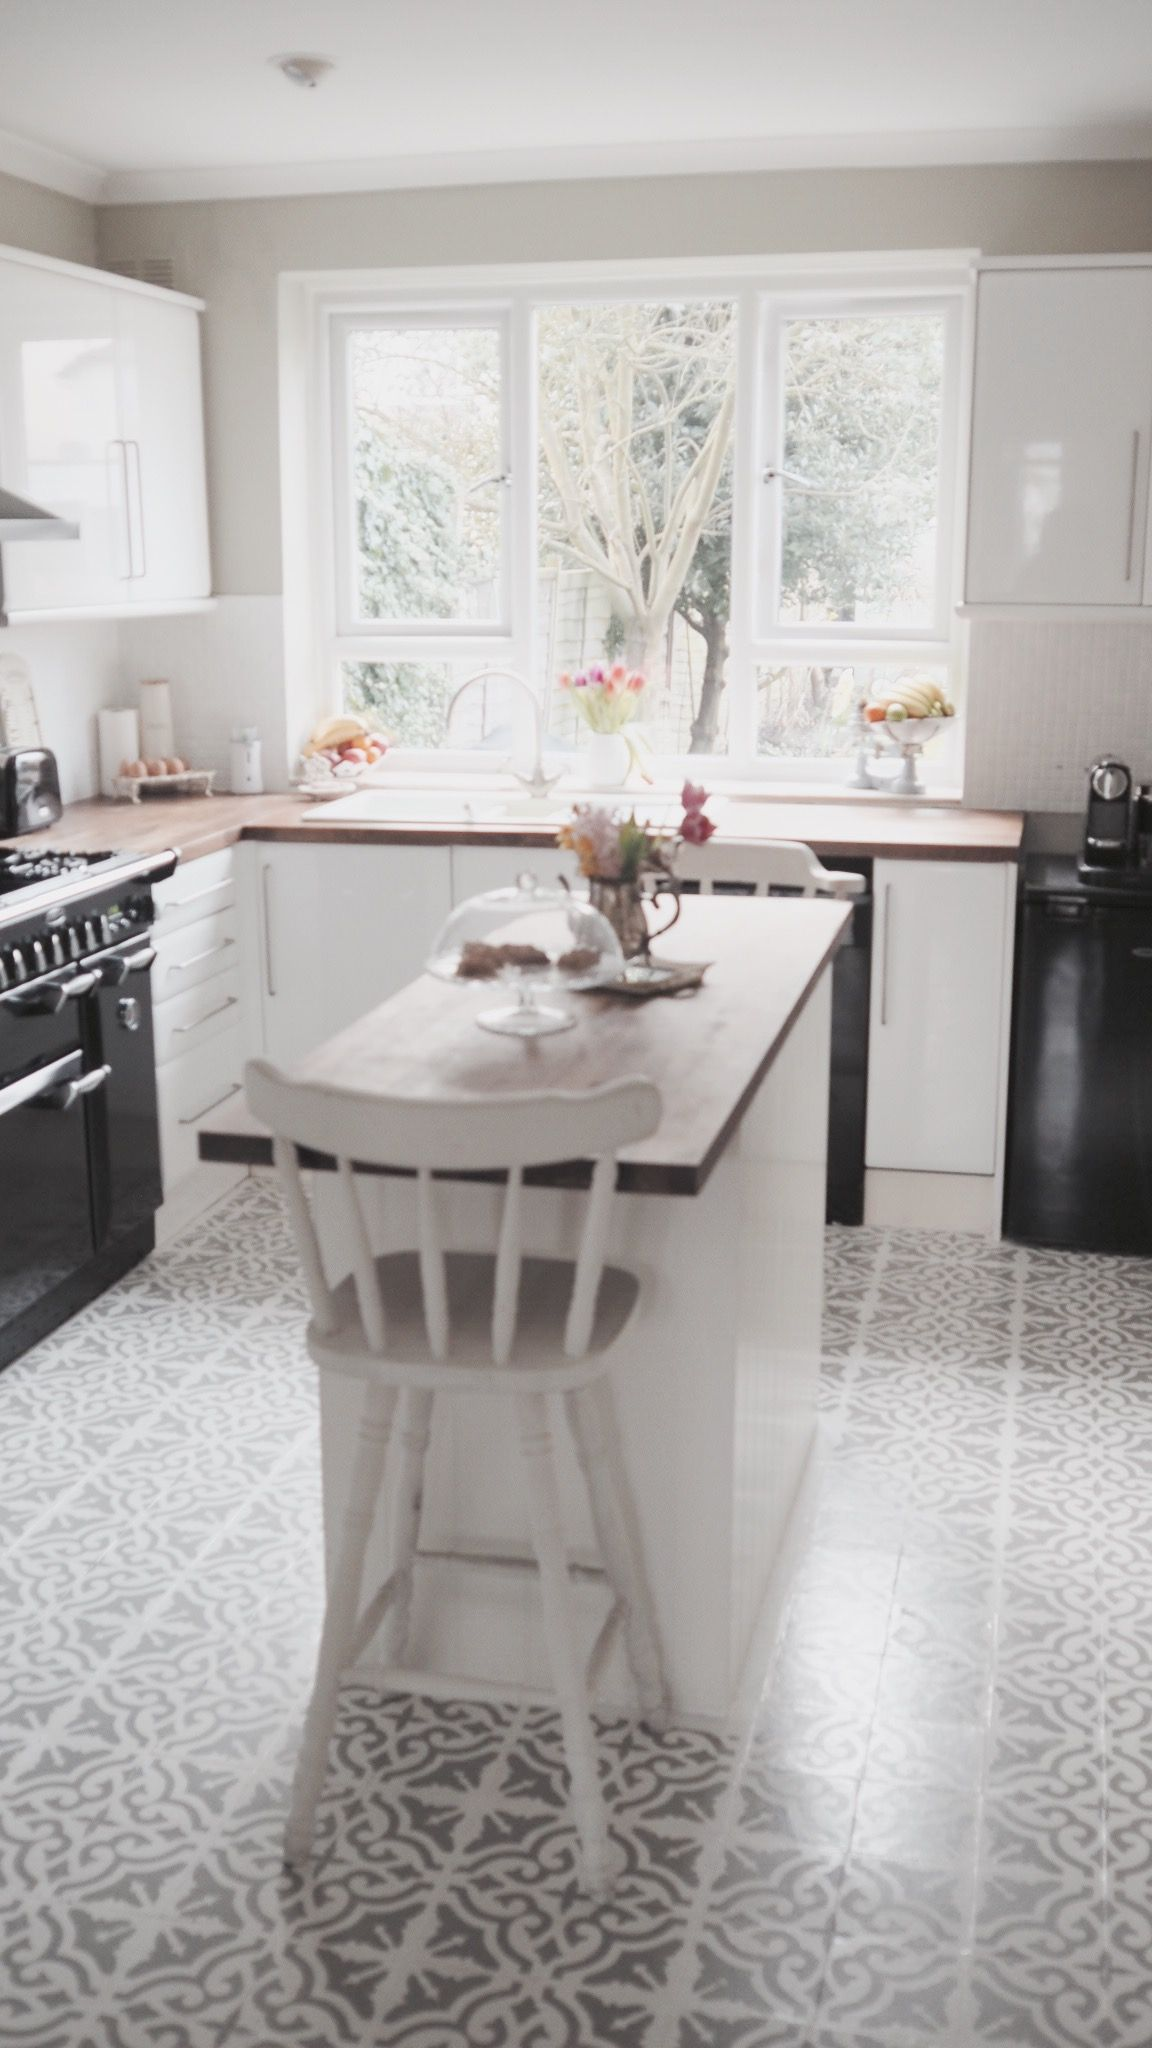 The kitchen needed some light injected into it. With a stencilled floor and white cabinets, the only pops of true colour are the flowers and fruit. Perfect. Walls are in Farrow & Ball French Gray. Getting the colours right for French opulence.